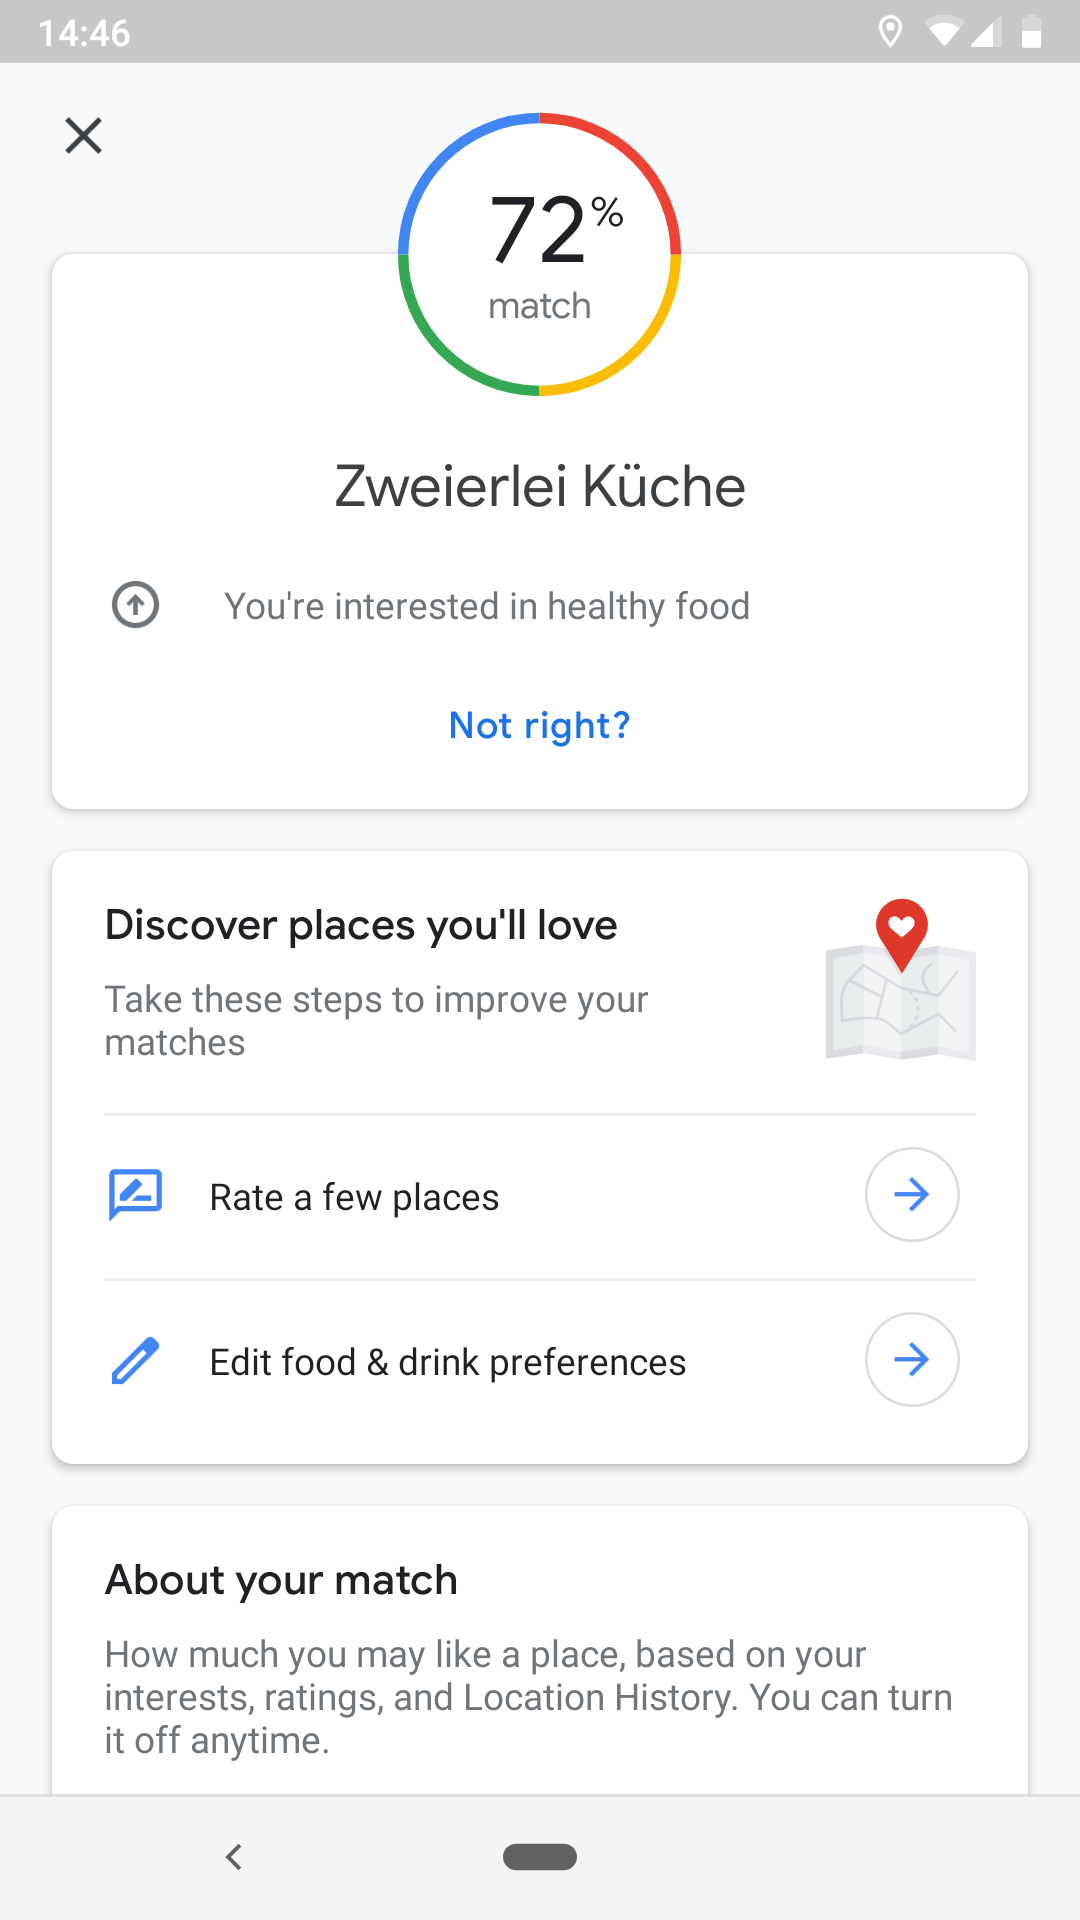 Finding Restaurants Nearby With Google Maps - The Boarding Pass